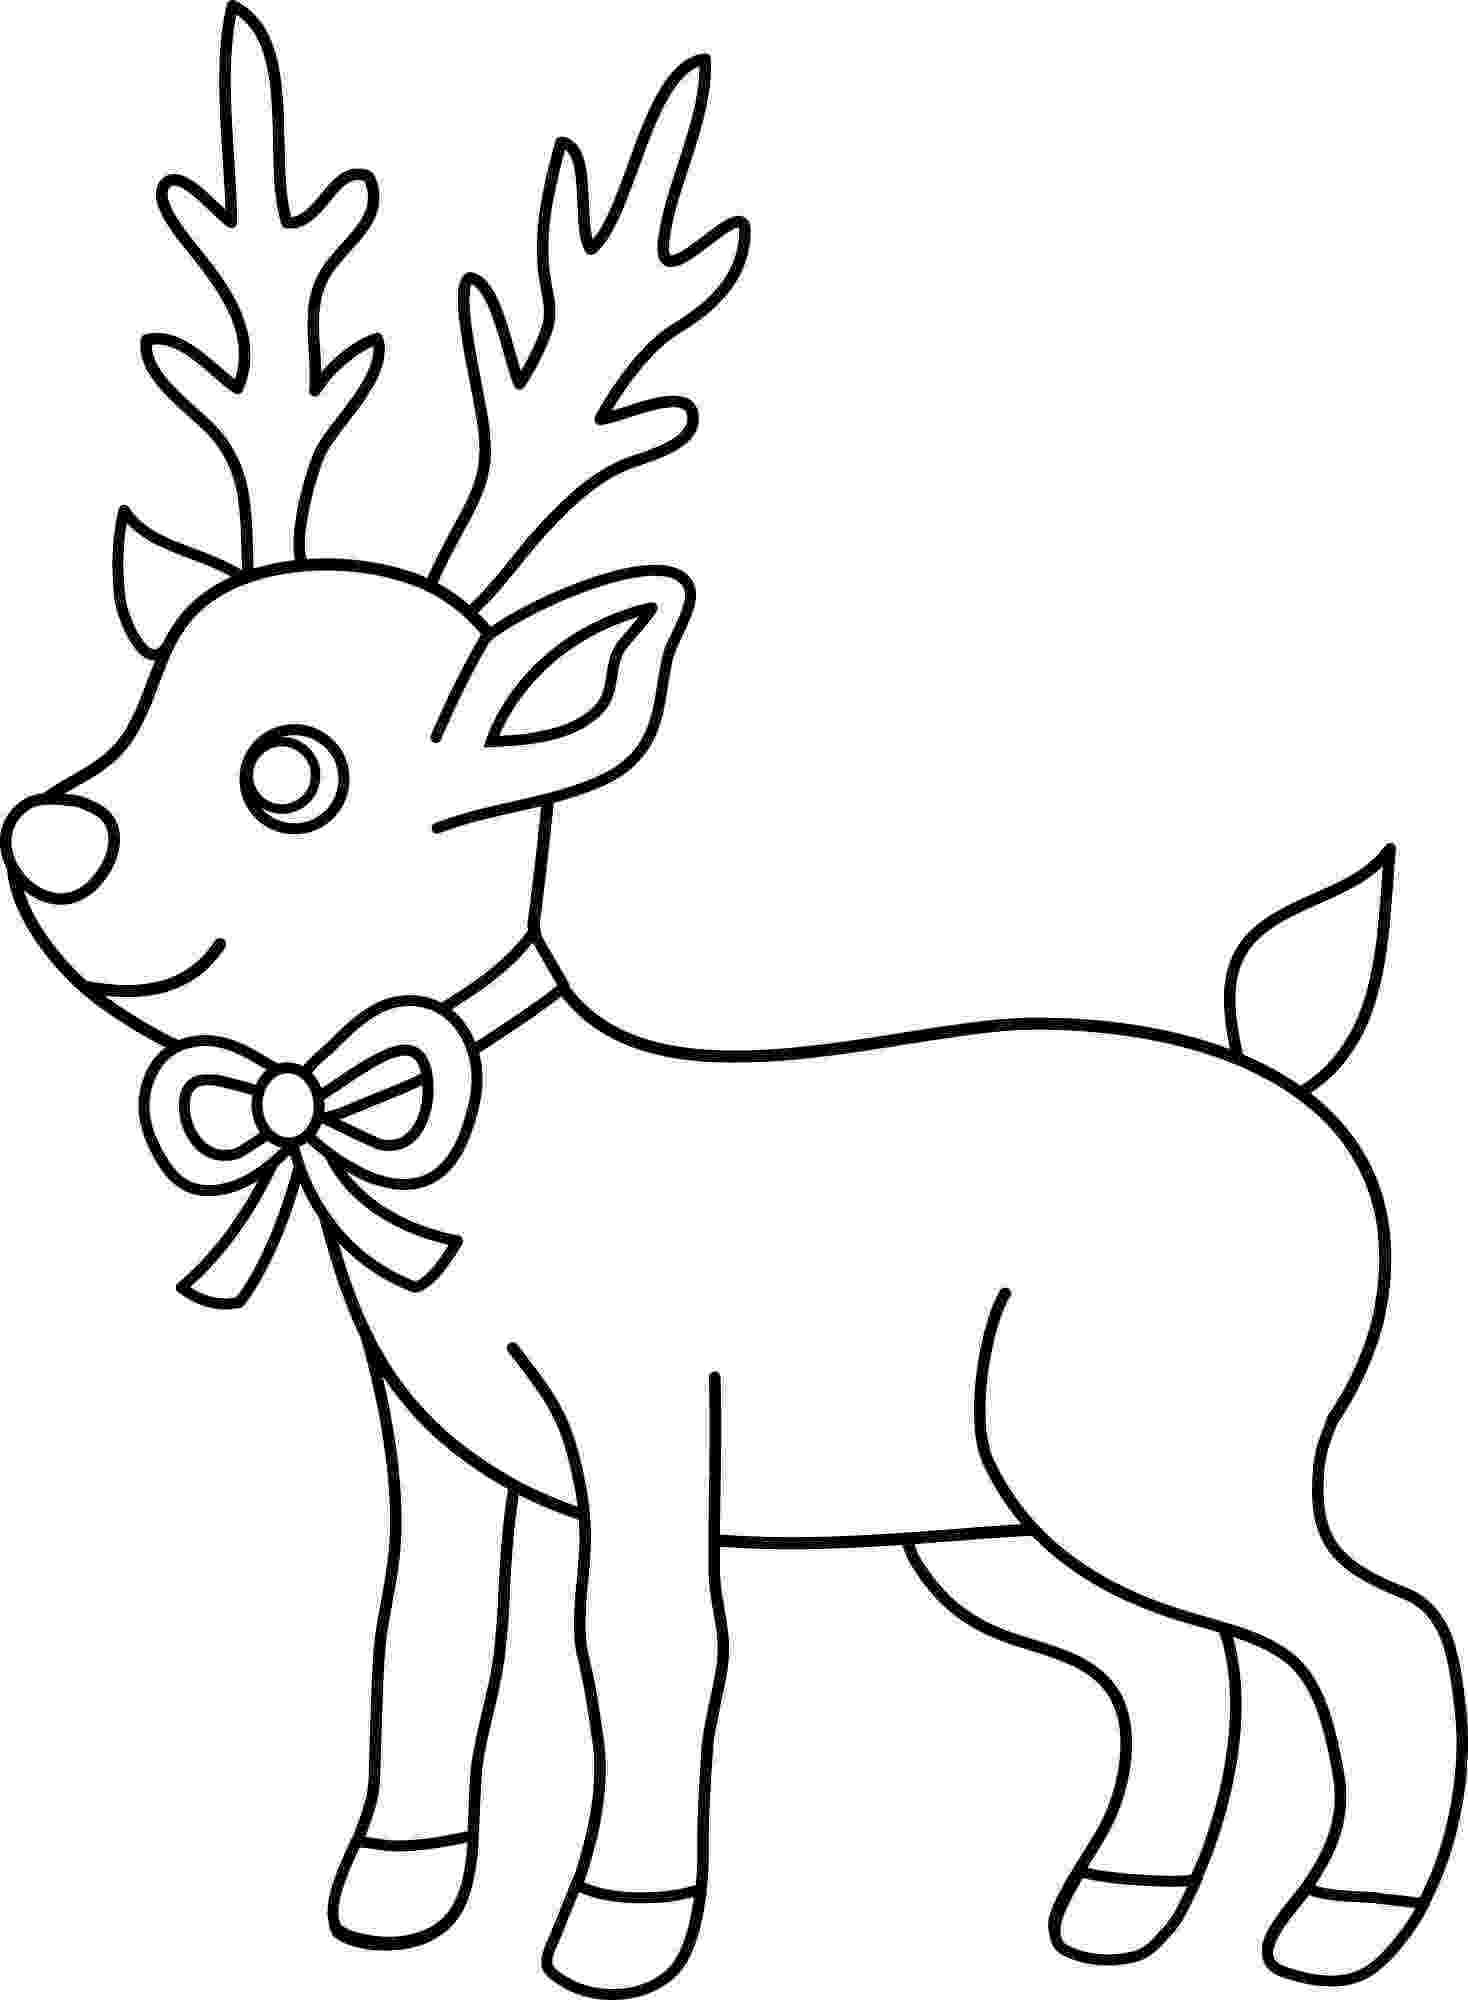 baby reindeer coloring pages christmas coloring pages for kids has baby jesus ornaments baby coloring reindeer pages